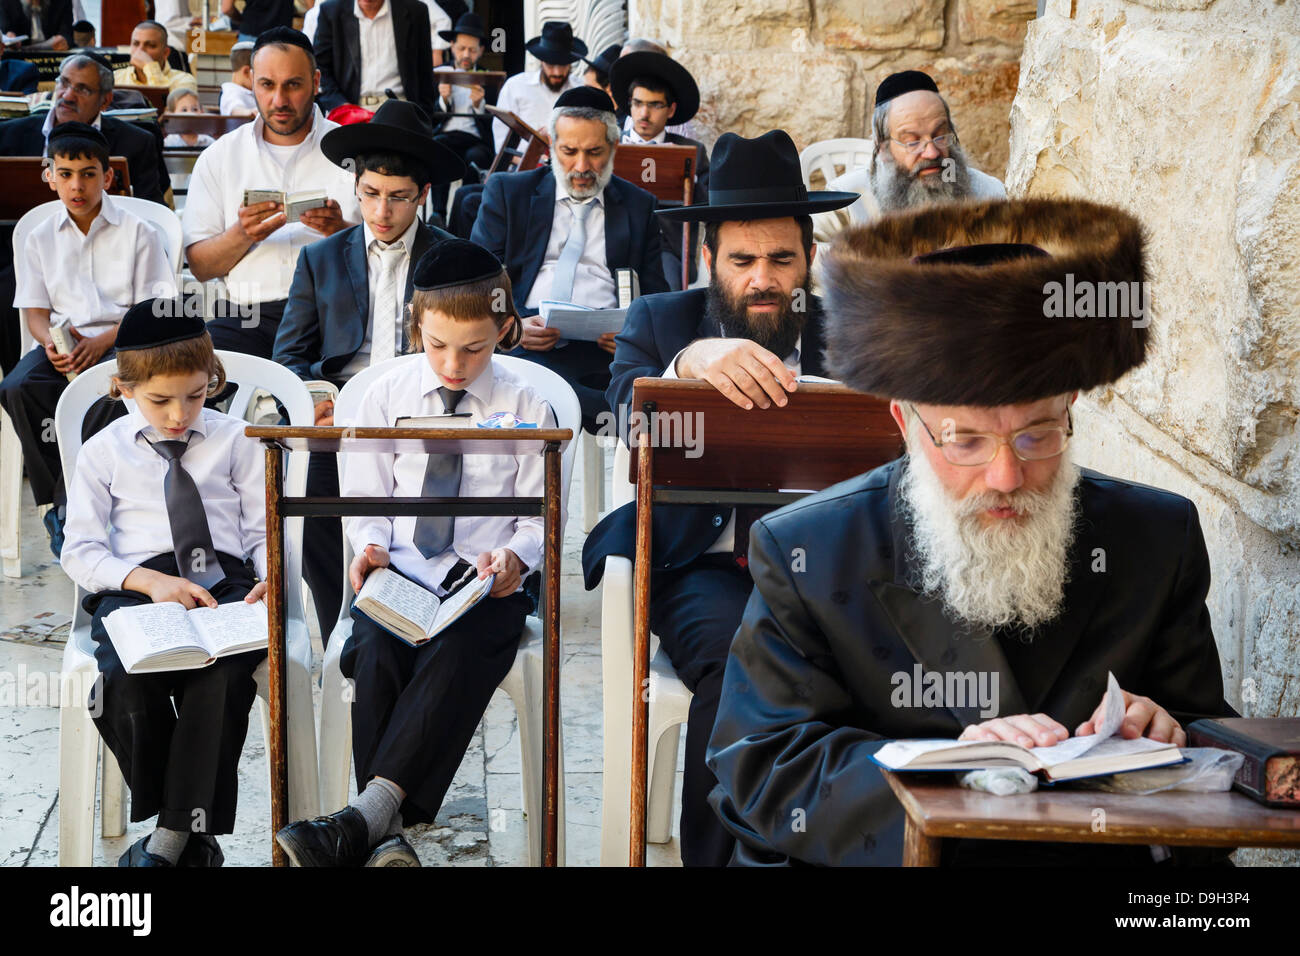 Orthodox jewish people praying at a synagogue by the western wall wall (Wailing wall) in the old city, Jerusalem, - Stock Image